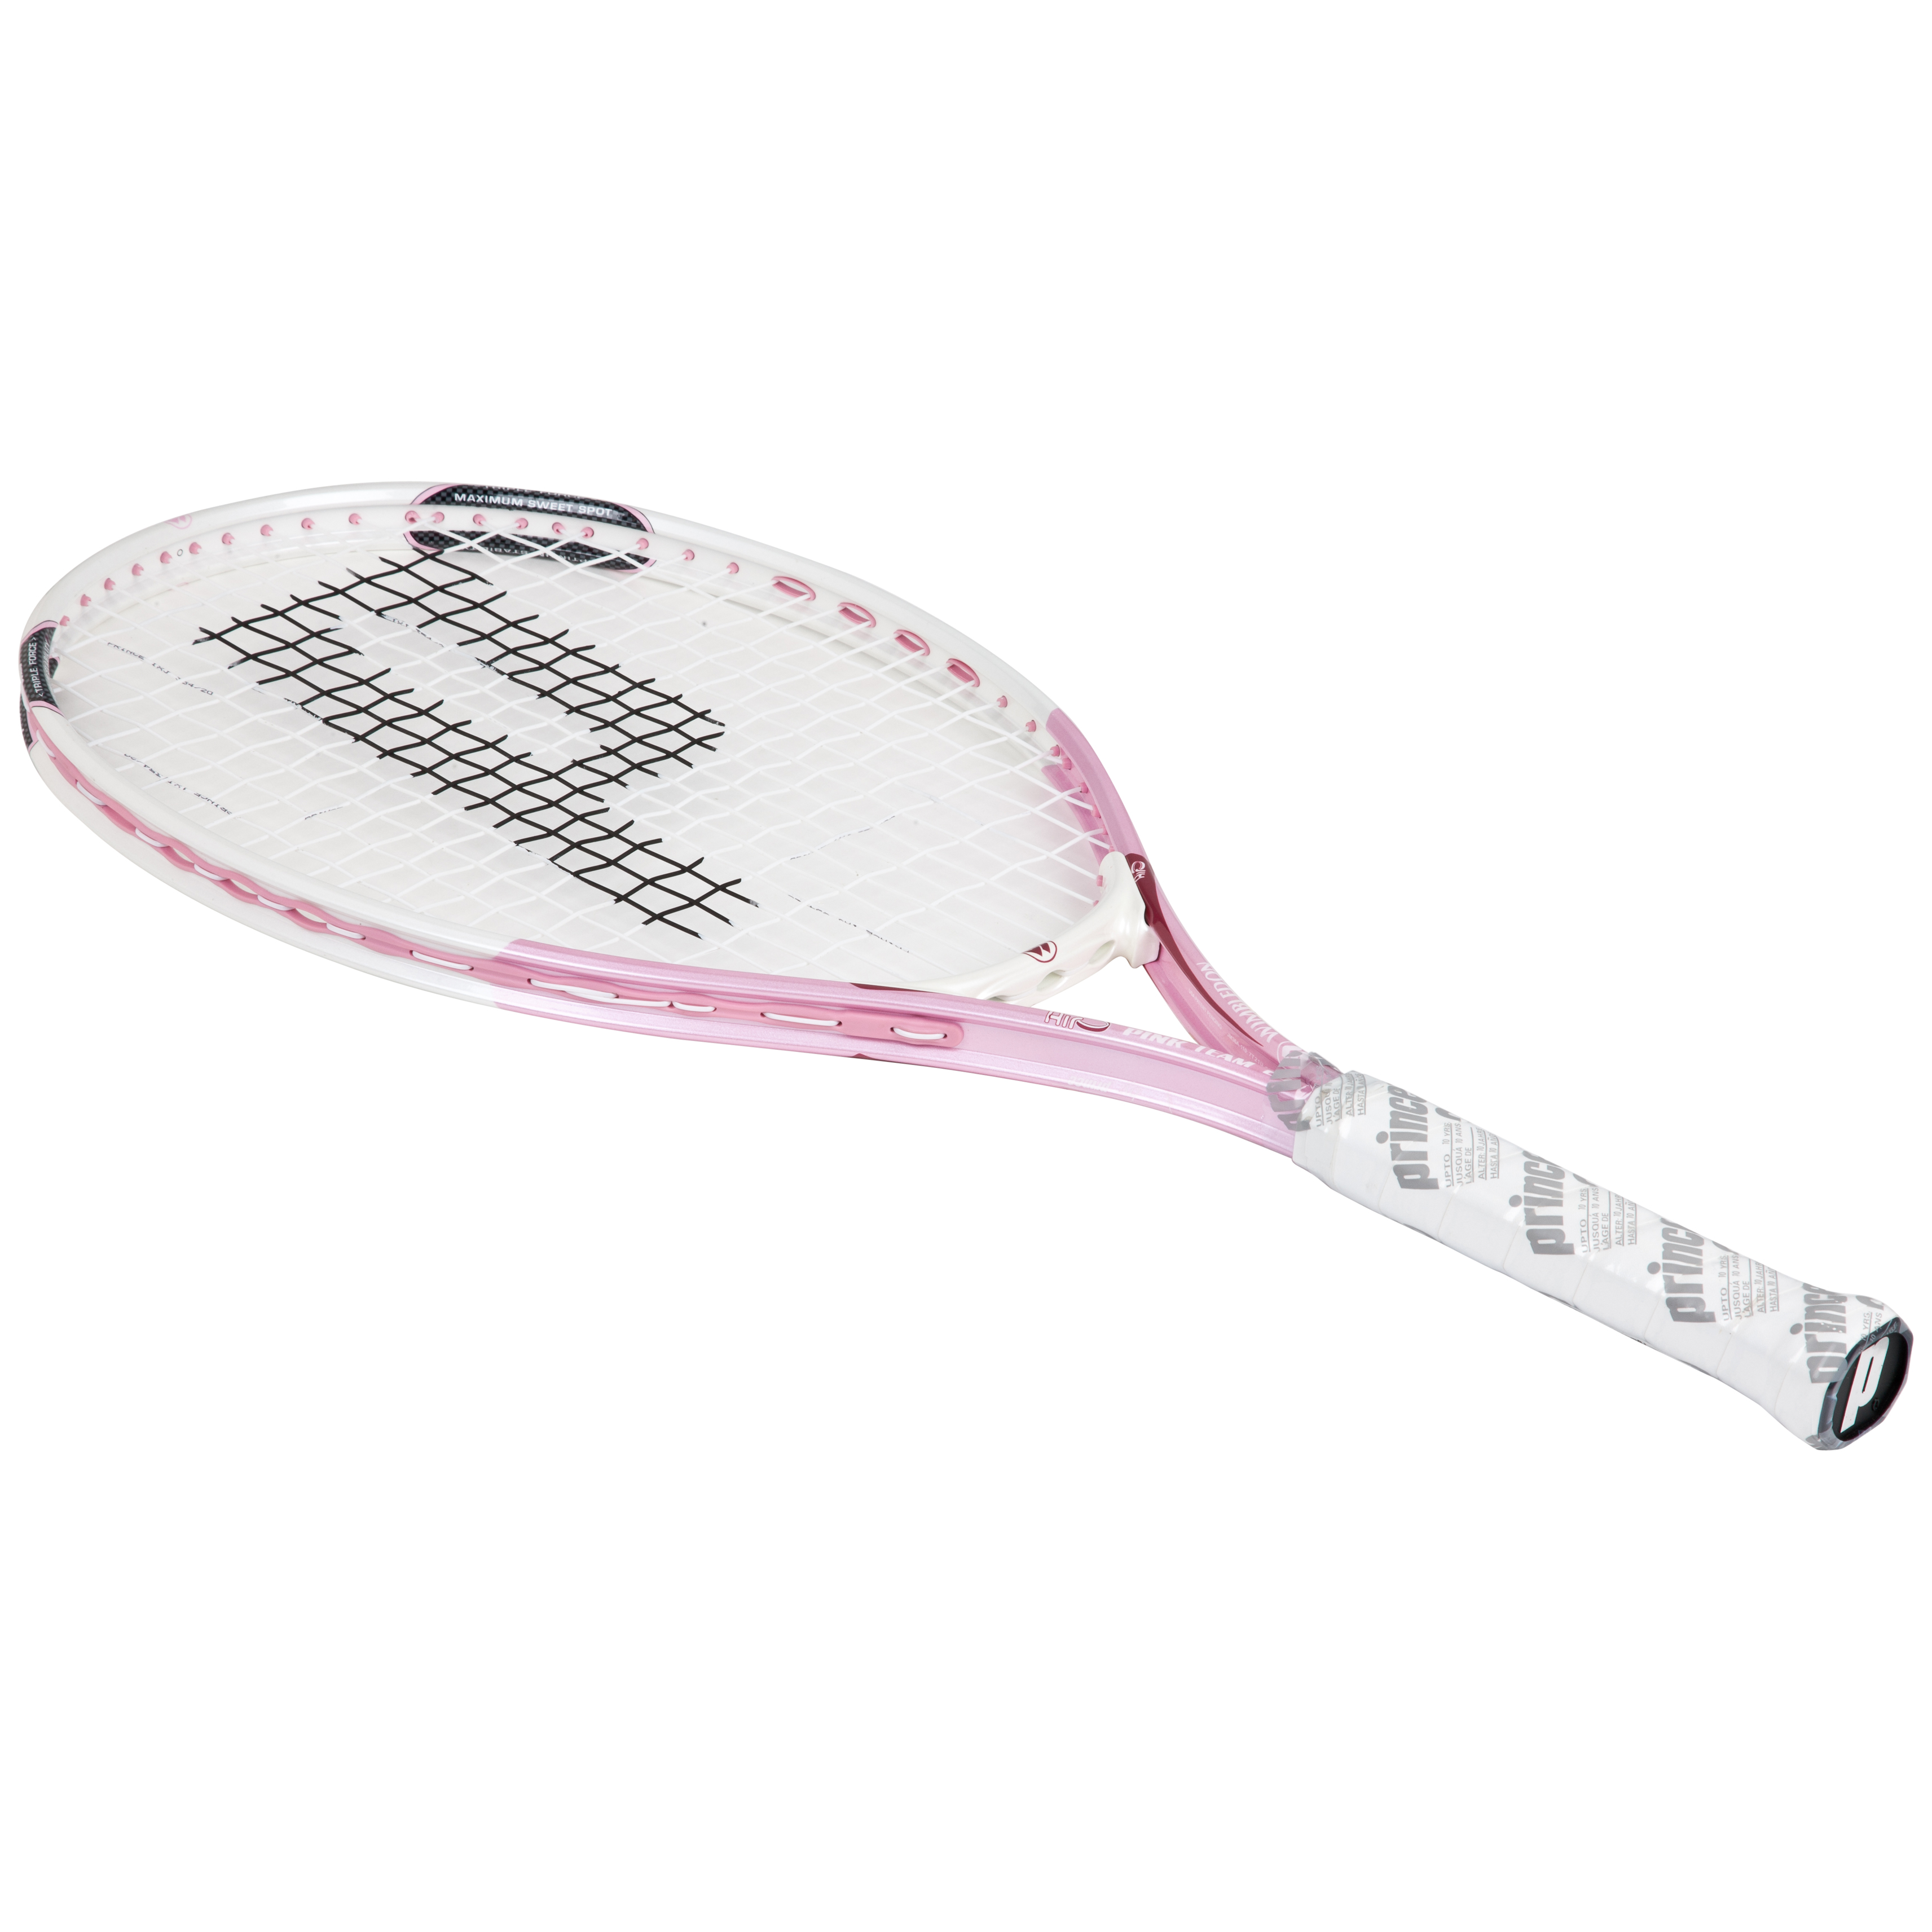 Wimbledon By Prince Airo Pink Team 25 Tennis Racket - White/Pink